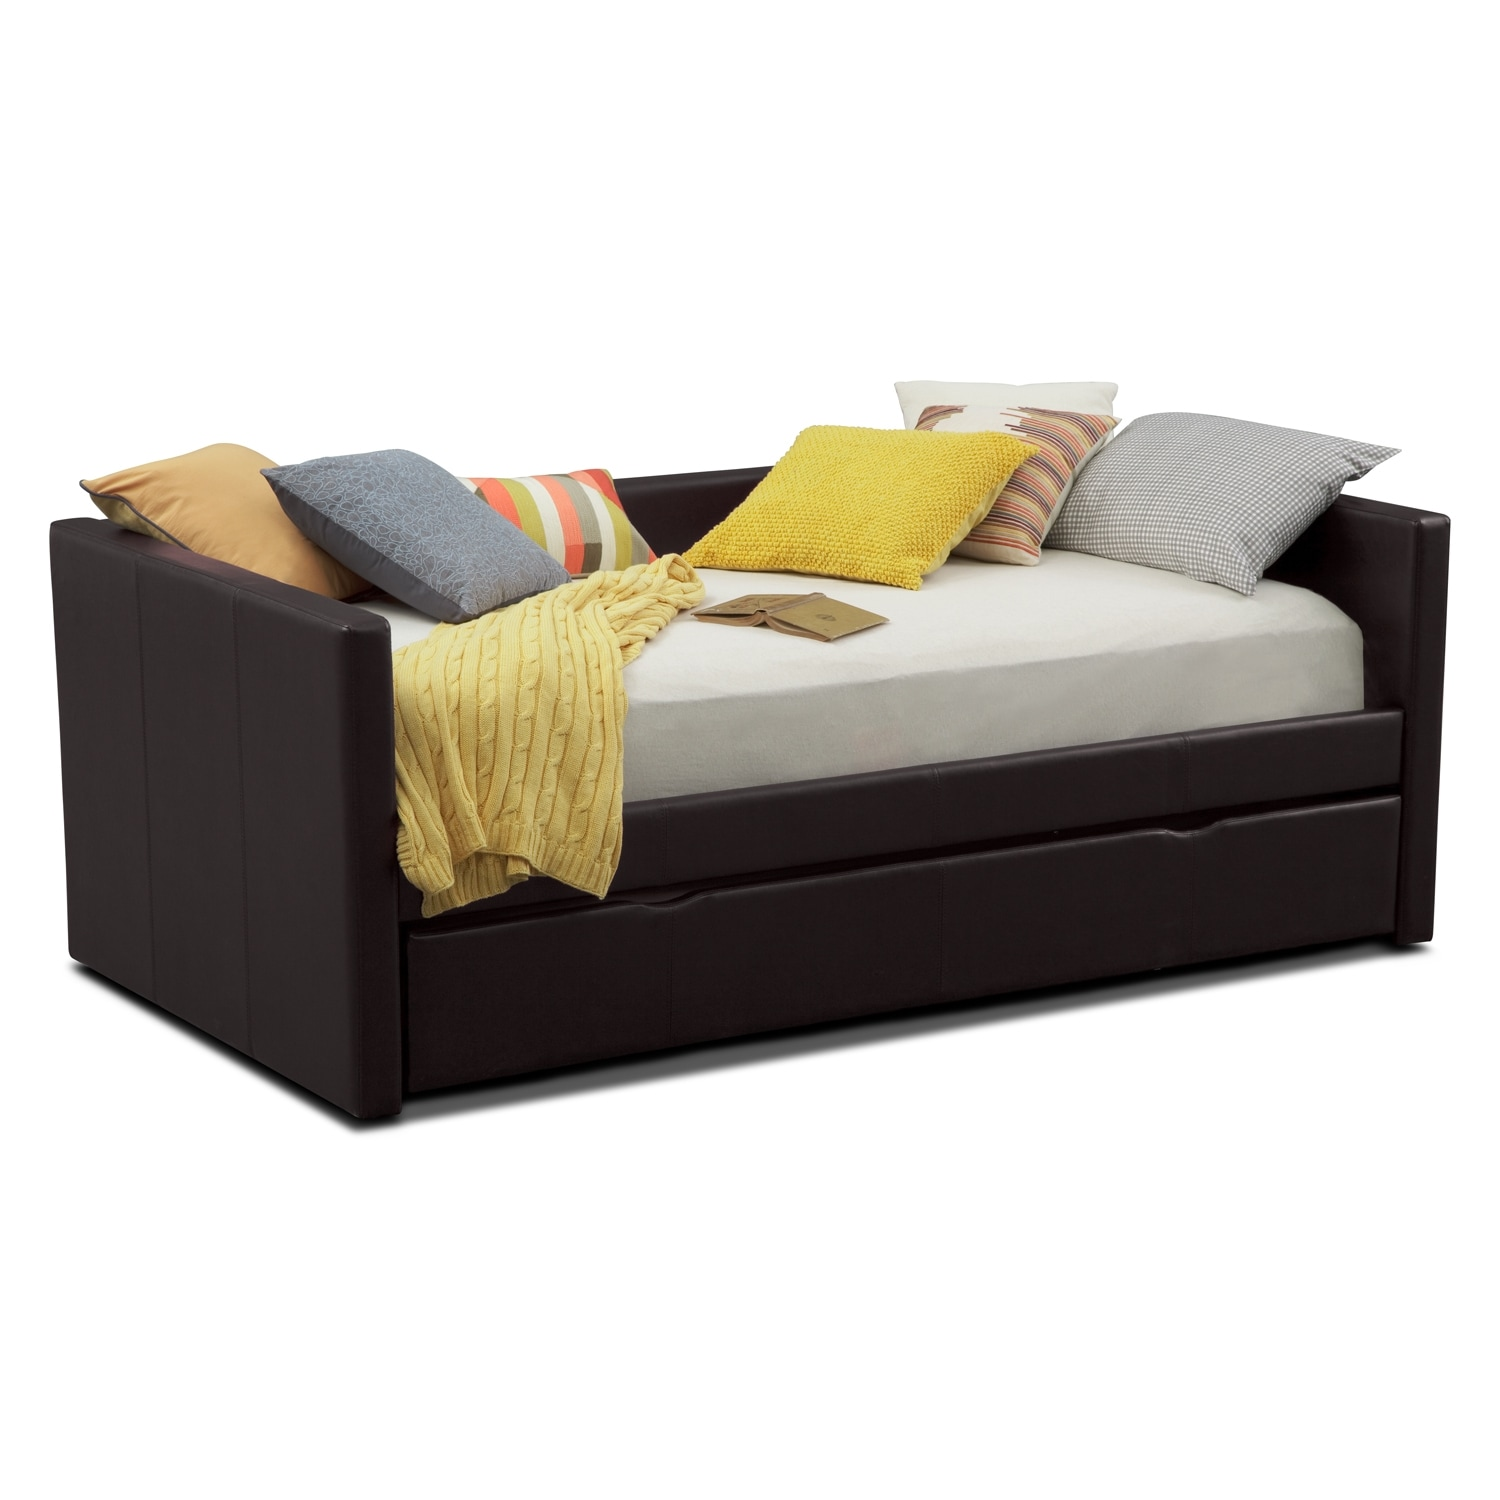 Carey Twin Daybed With Trundle Brown Value City Furniture